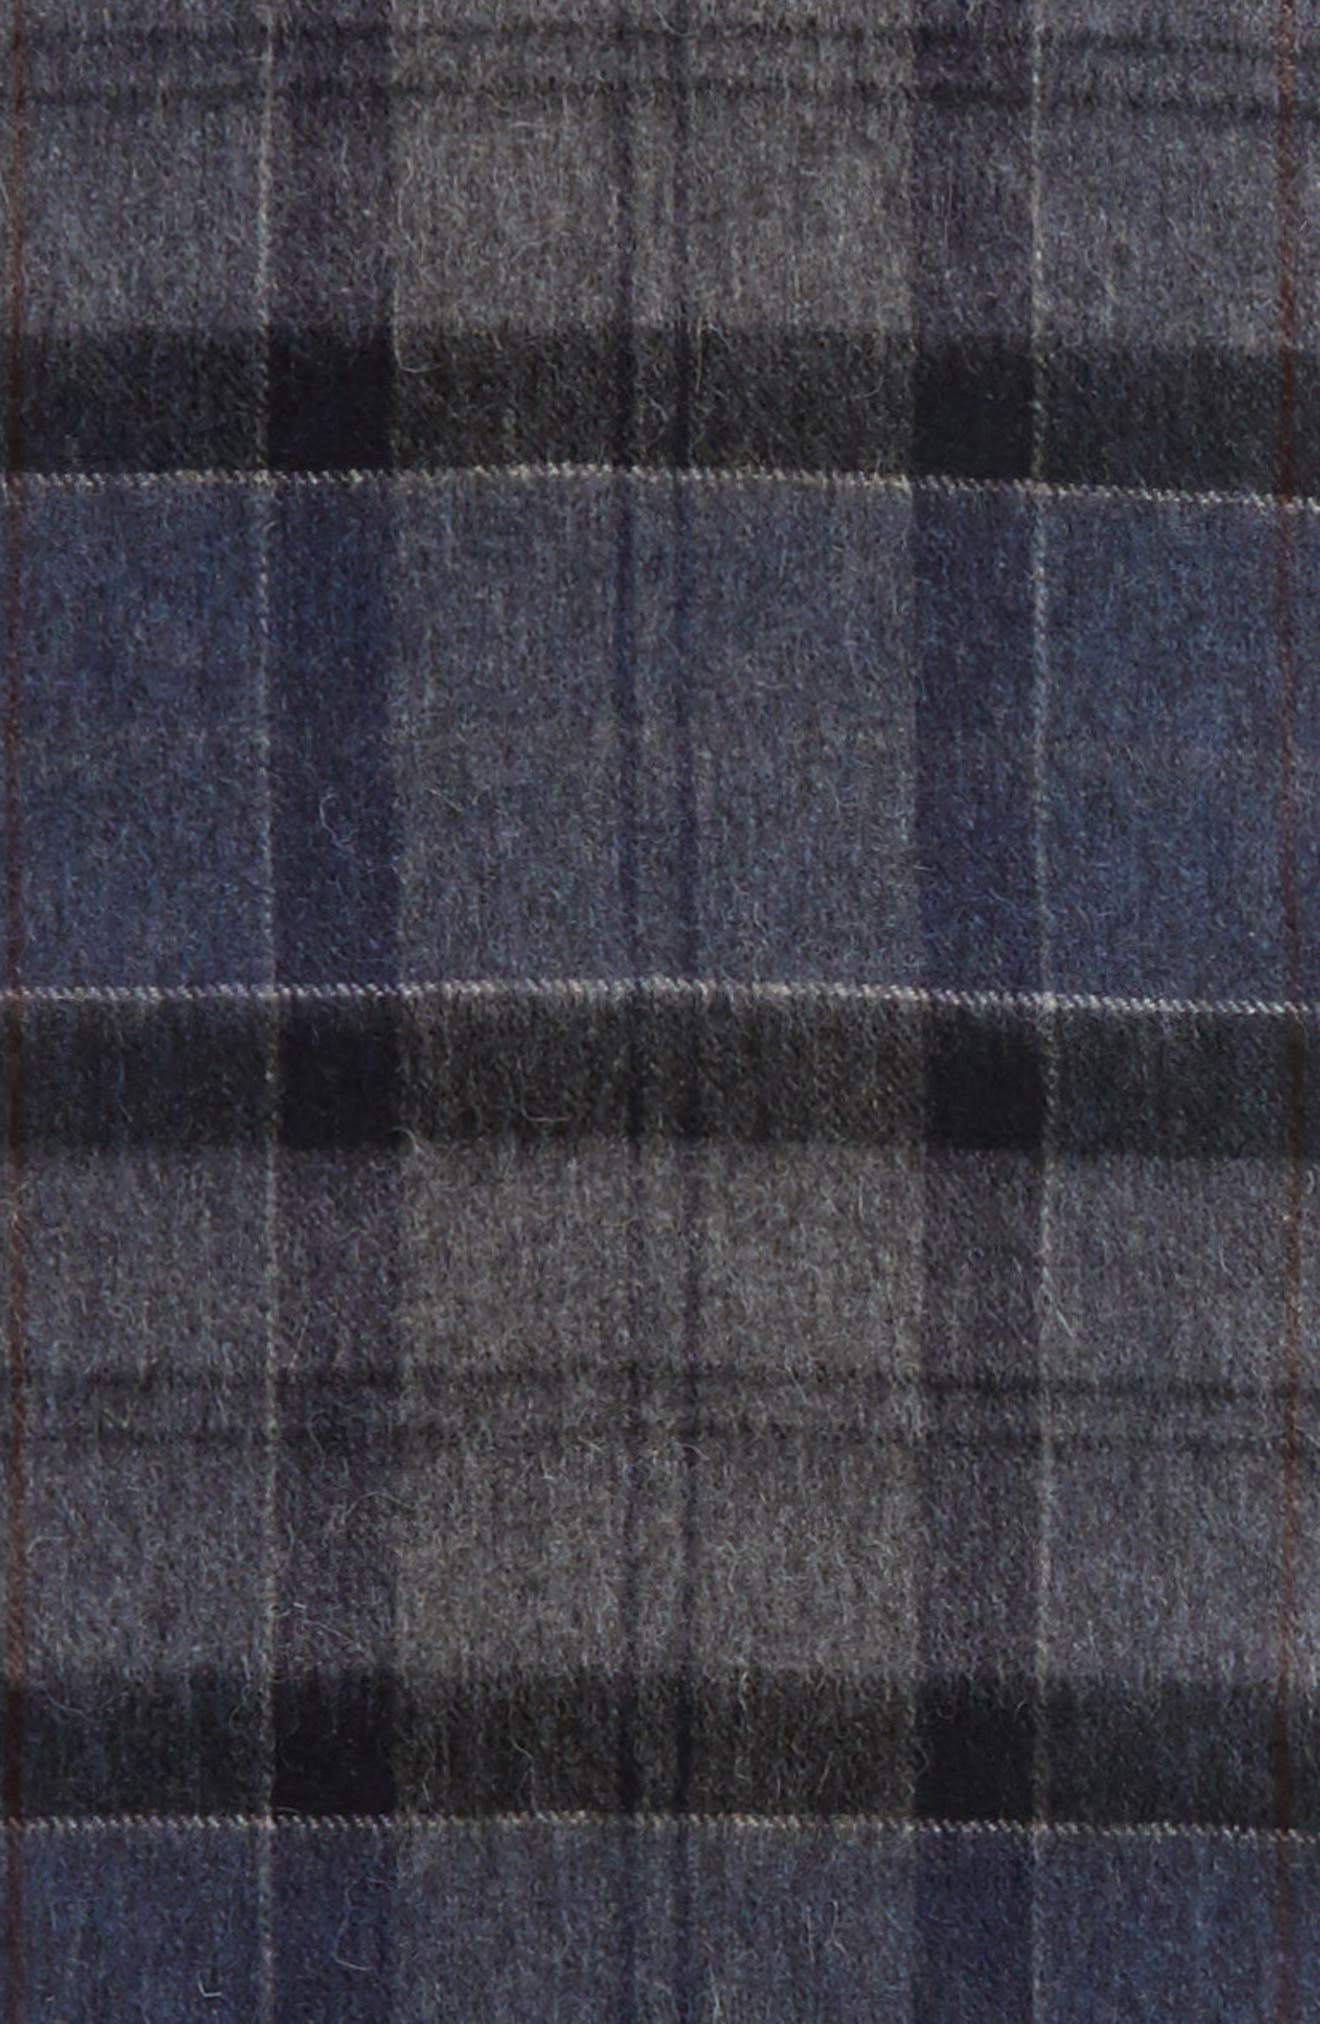 Tartan Plaid Wool & Cashmere Scarf,                             Alternate thumbnail 4, color,                             410